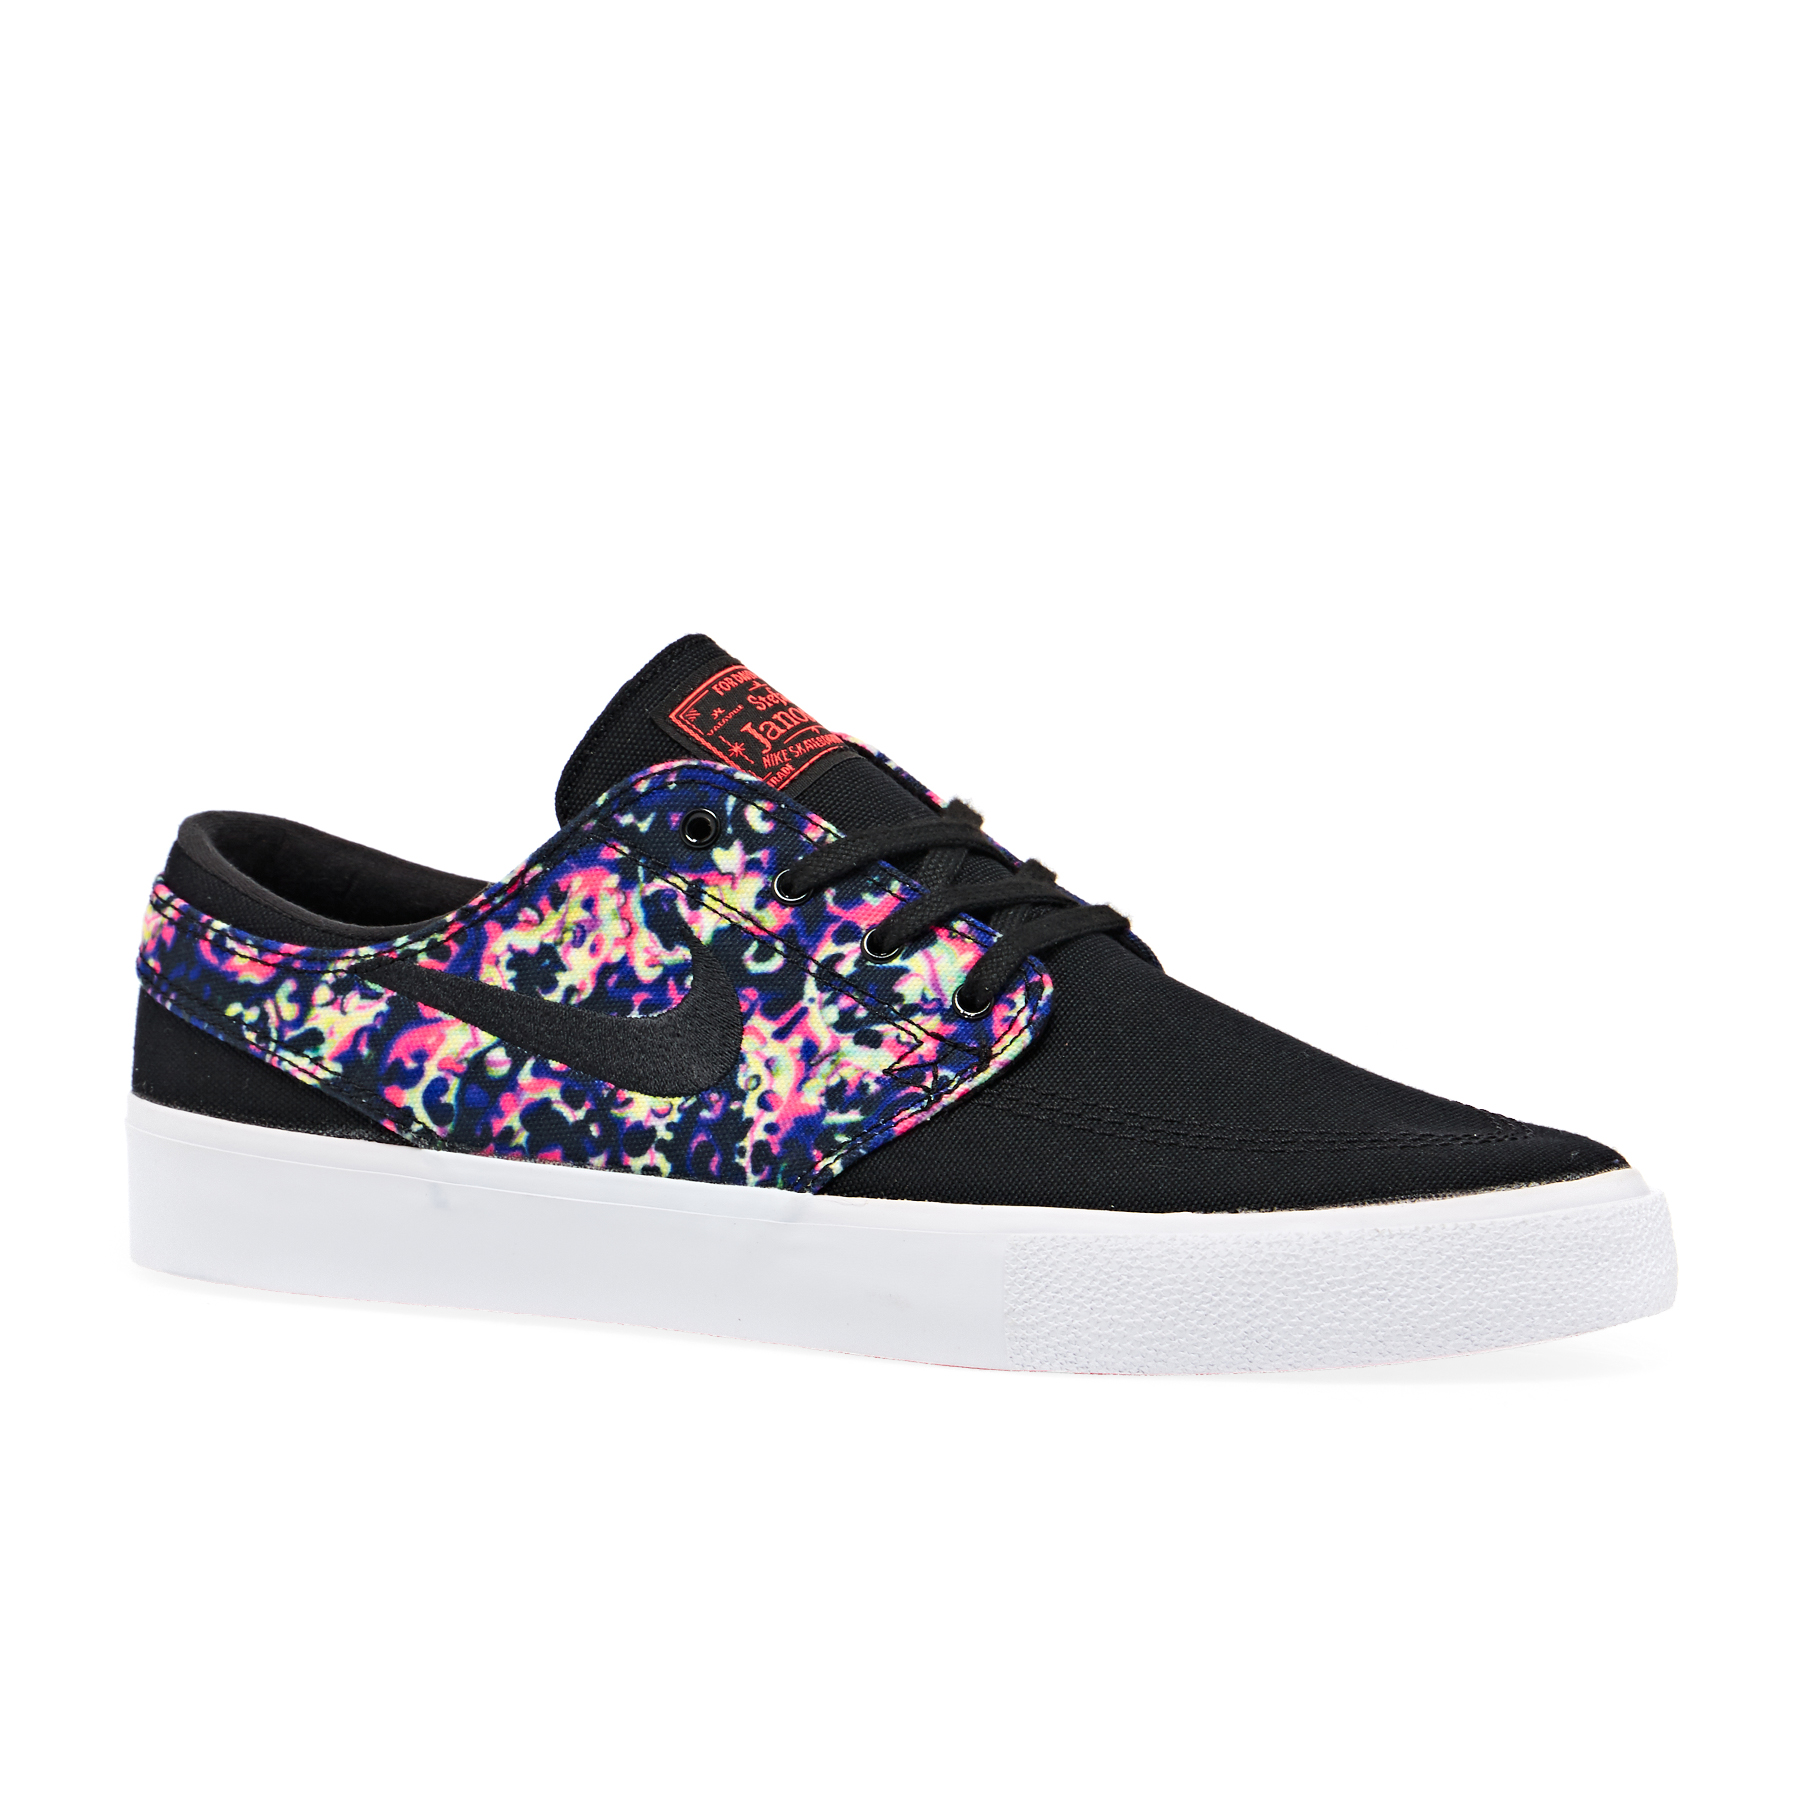 Sumergir receta evidencia  Nike SB Zoom Janoski Canvas Rm Premium Blacklight Shoes - Free Delivery  options on All Orders from Surfdome UK